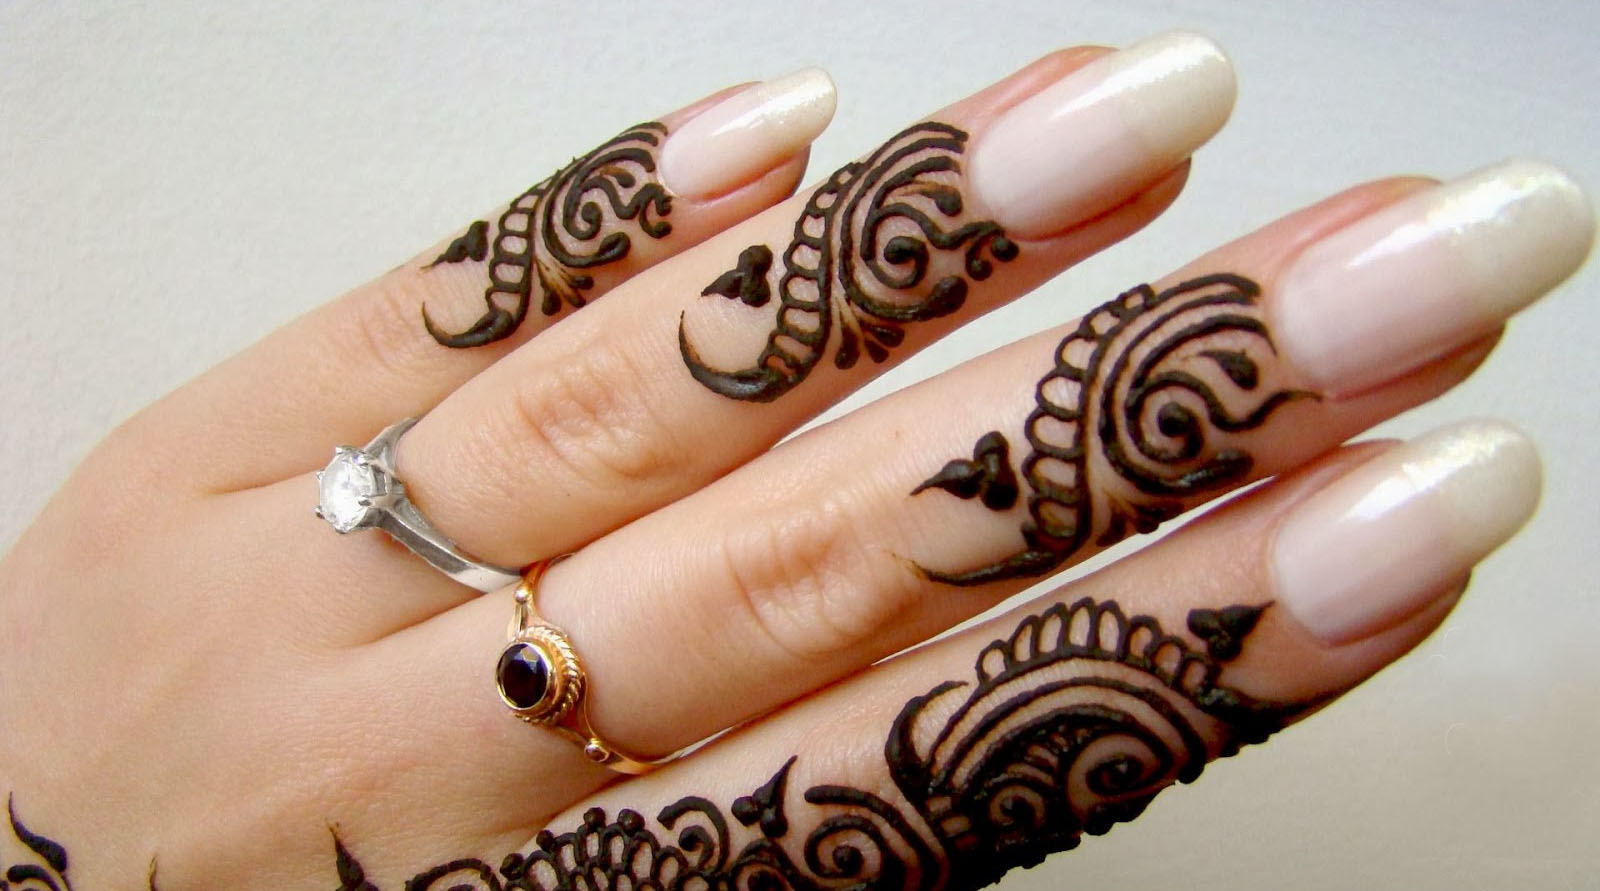 Simple Mehndi Patterns Wallpapers : Mehndi design wallpapers pictures images